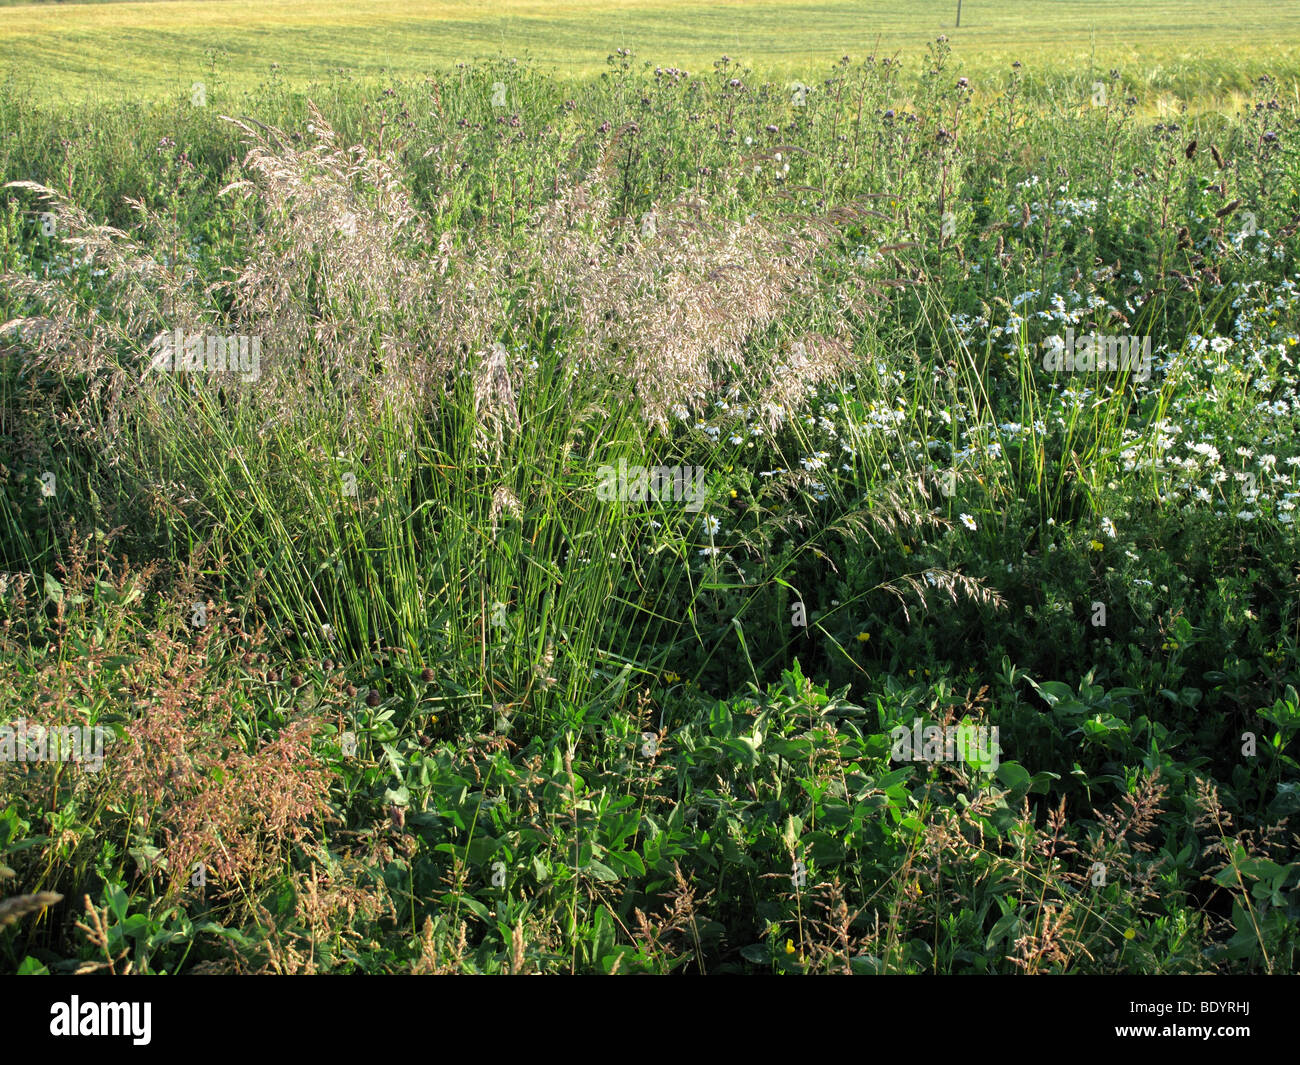 Field Margin sown with wildflowers and grasses - Stock Image